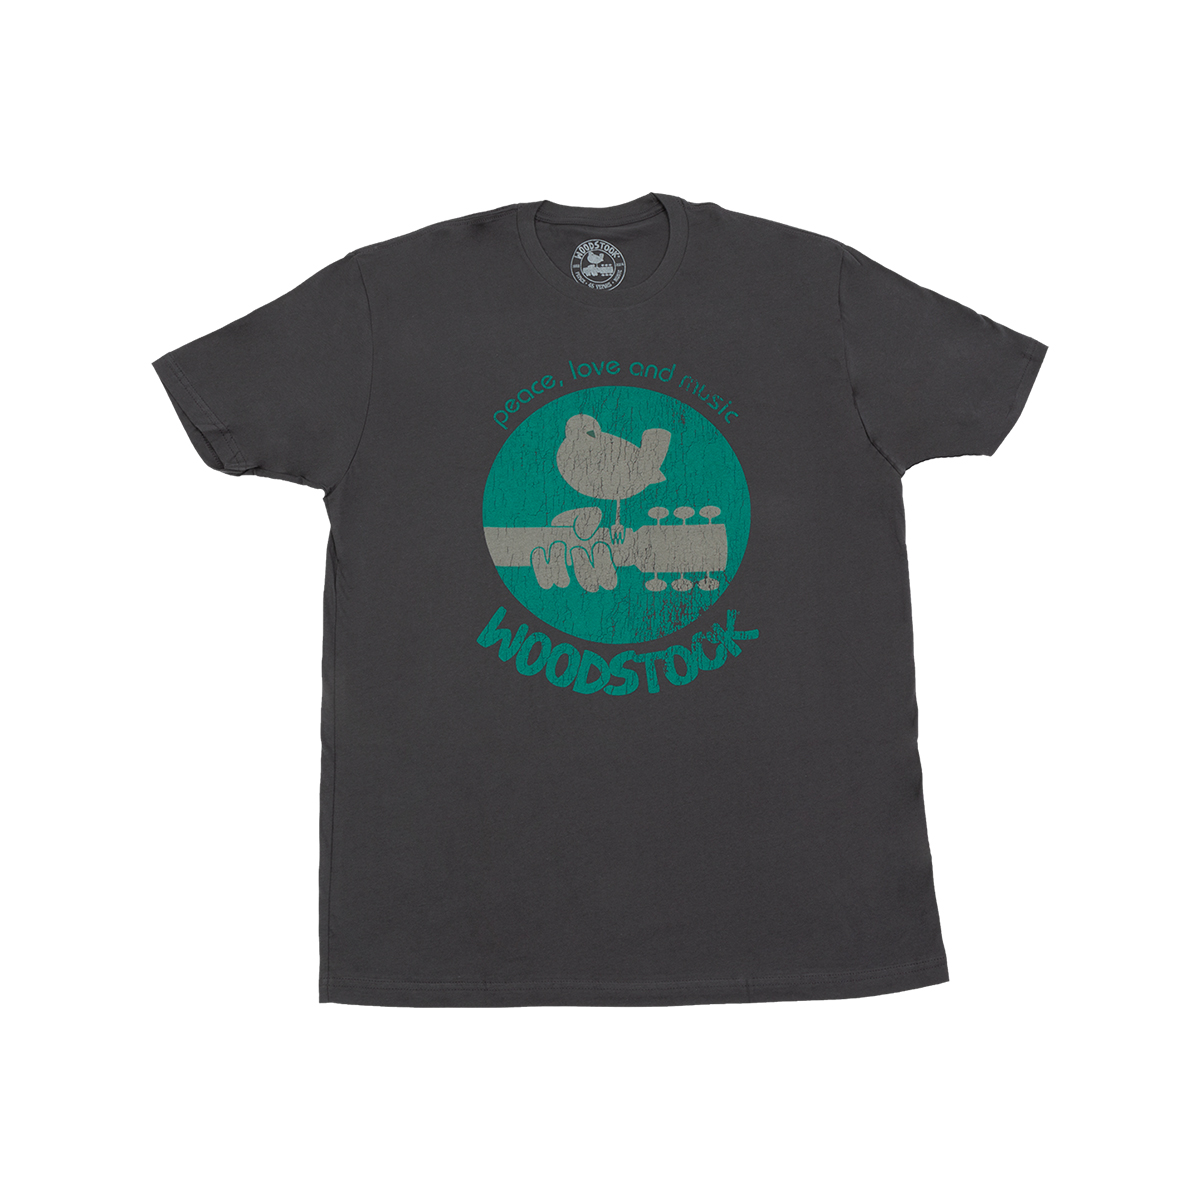 Dove on Guitar Crew T-shirt